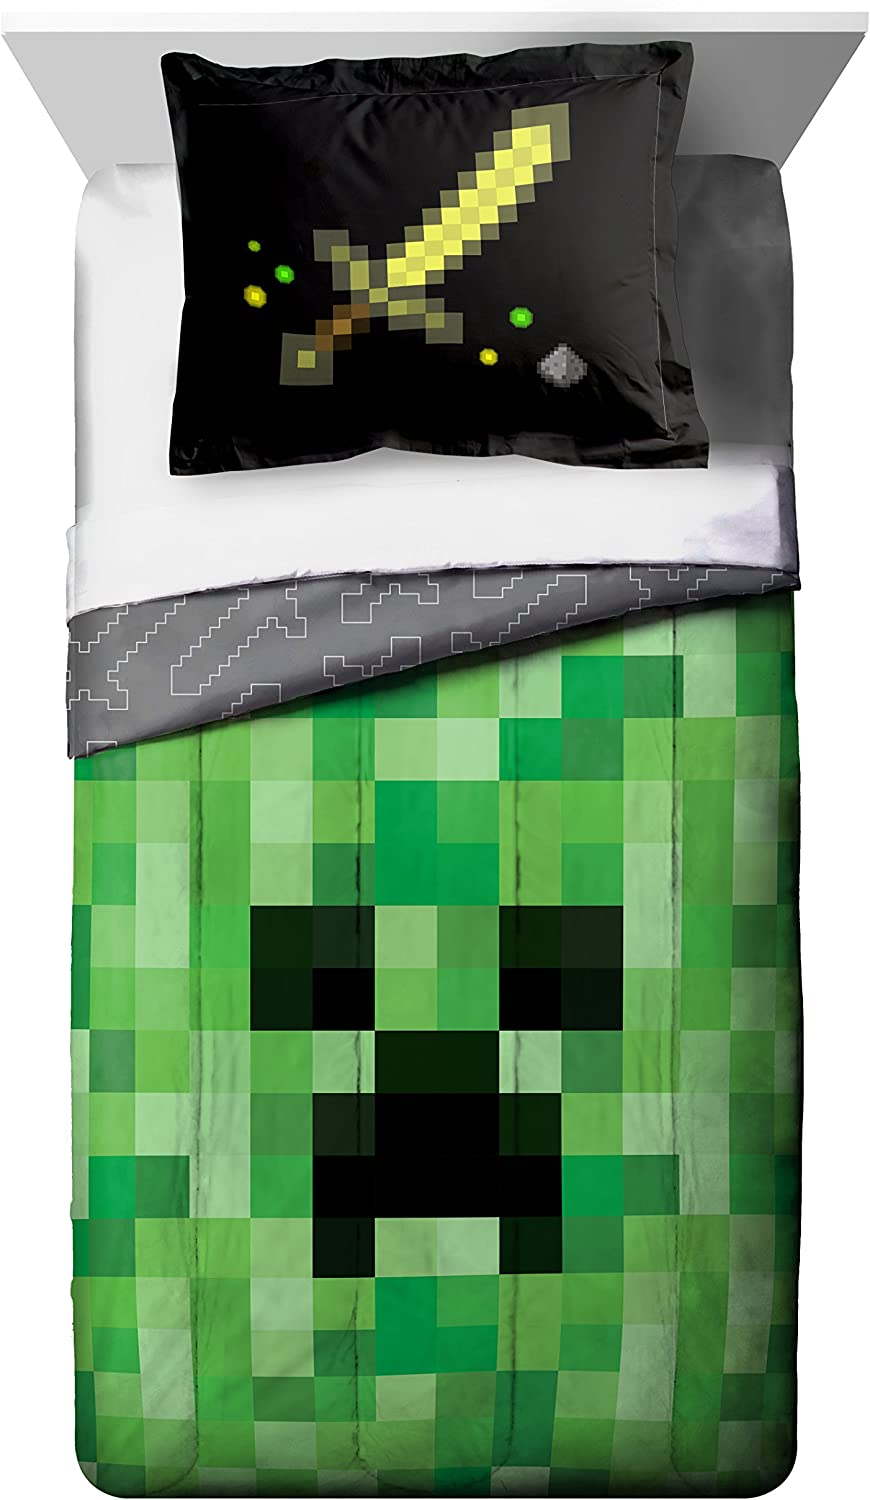 Jay Franco Minecraft Creeper Twin Comforter with Bonus Sham - Super Soft Kids Reversible Bedding - Fade Resistant Microfiber (Official Minecraft Product)